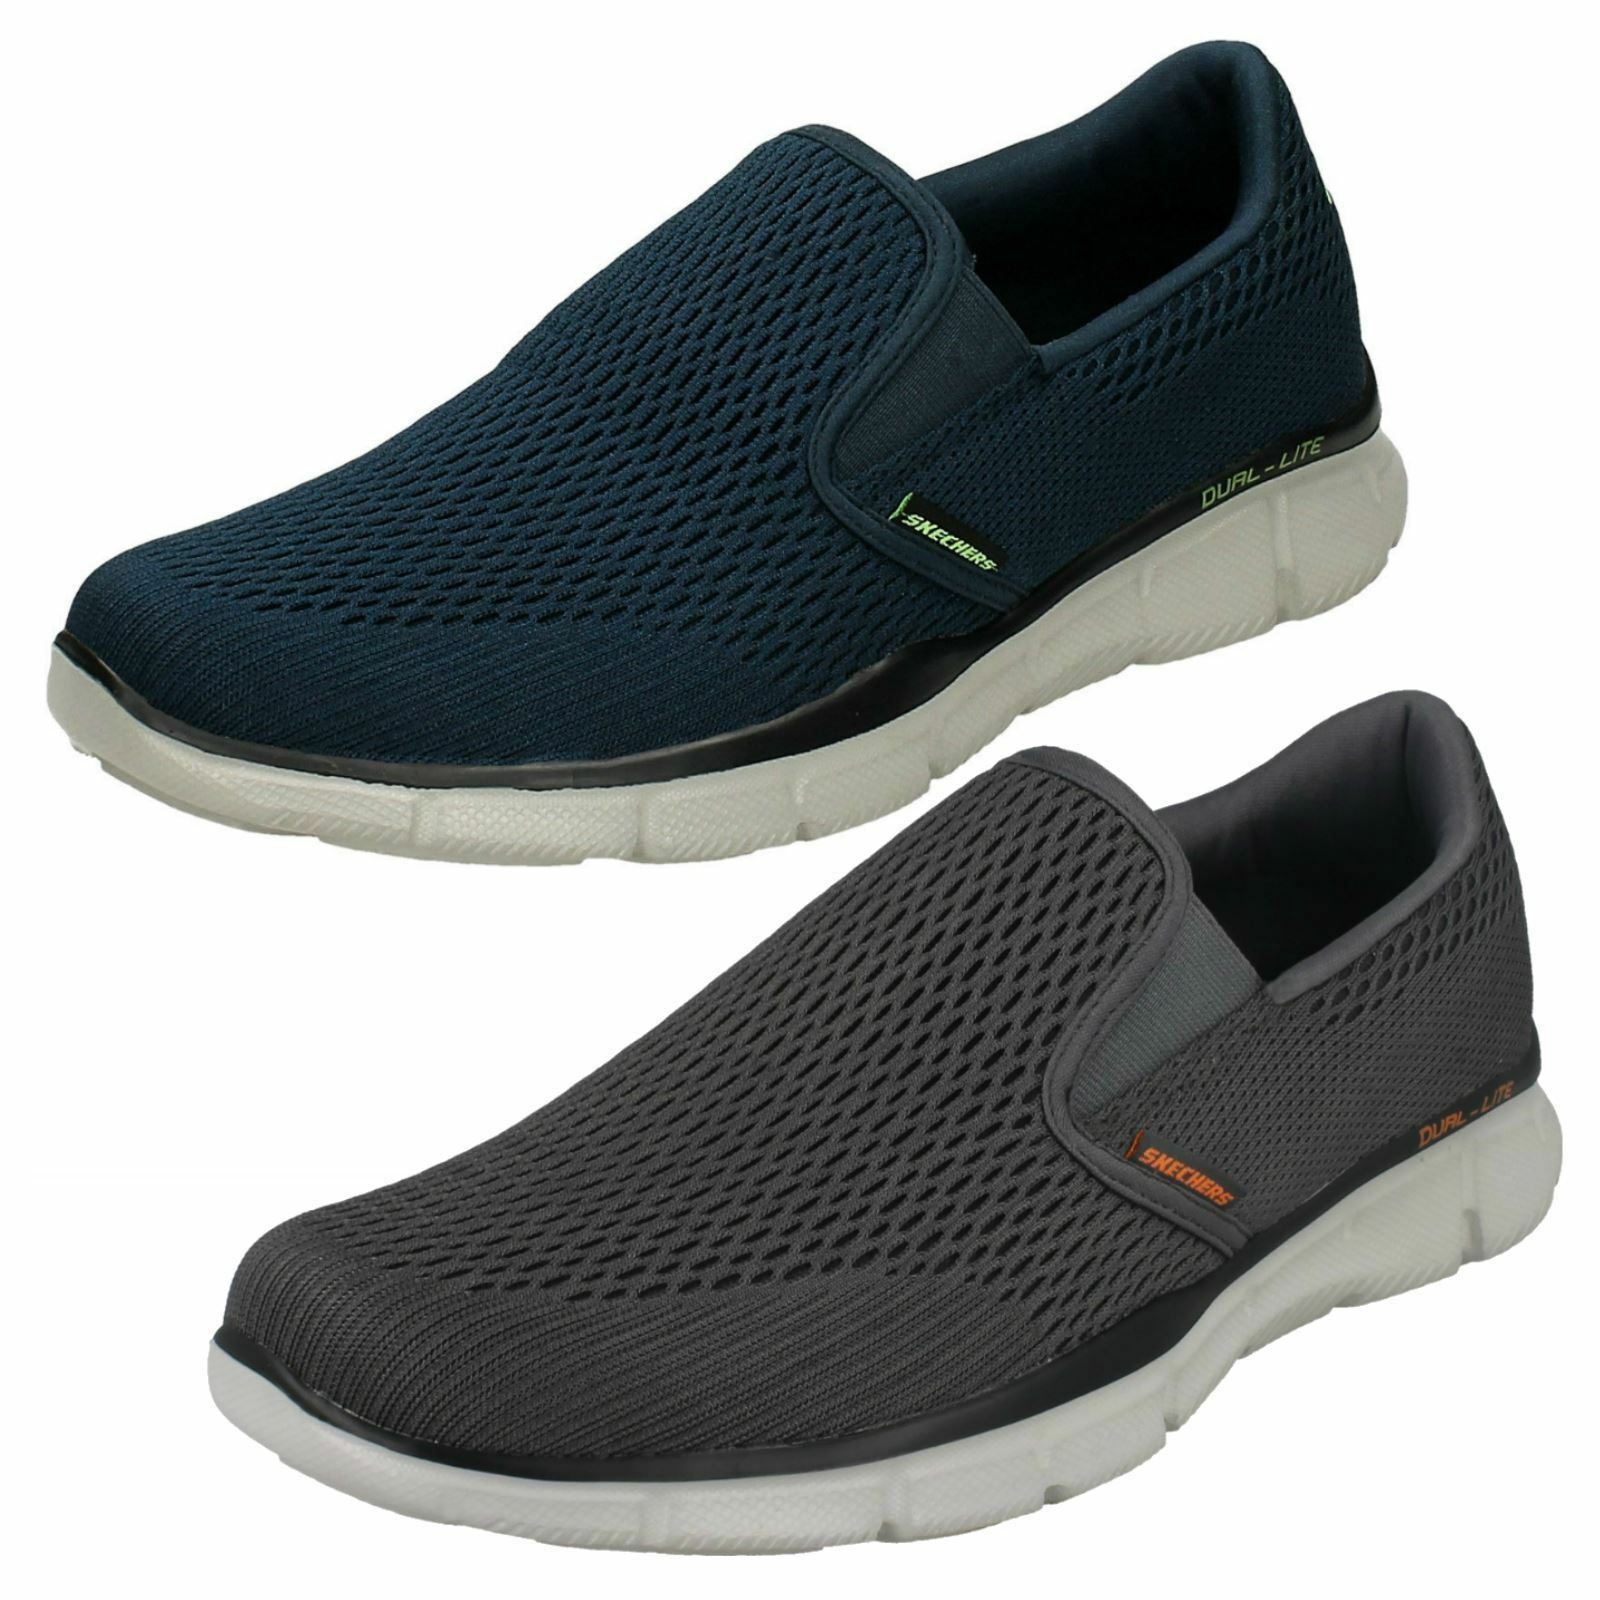 Herren SKECHERS EQUALIZER DOUBLE PLAY MEMORY FOAM NAVY+GREY SLIP ON TRAINER SHOE NAVY+GREY FOAM 27676a